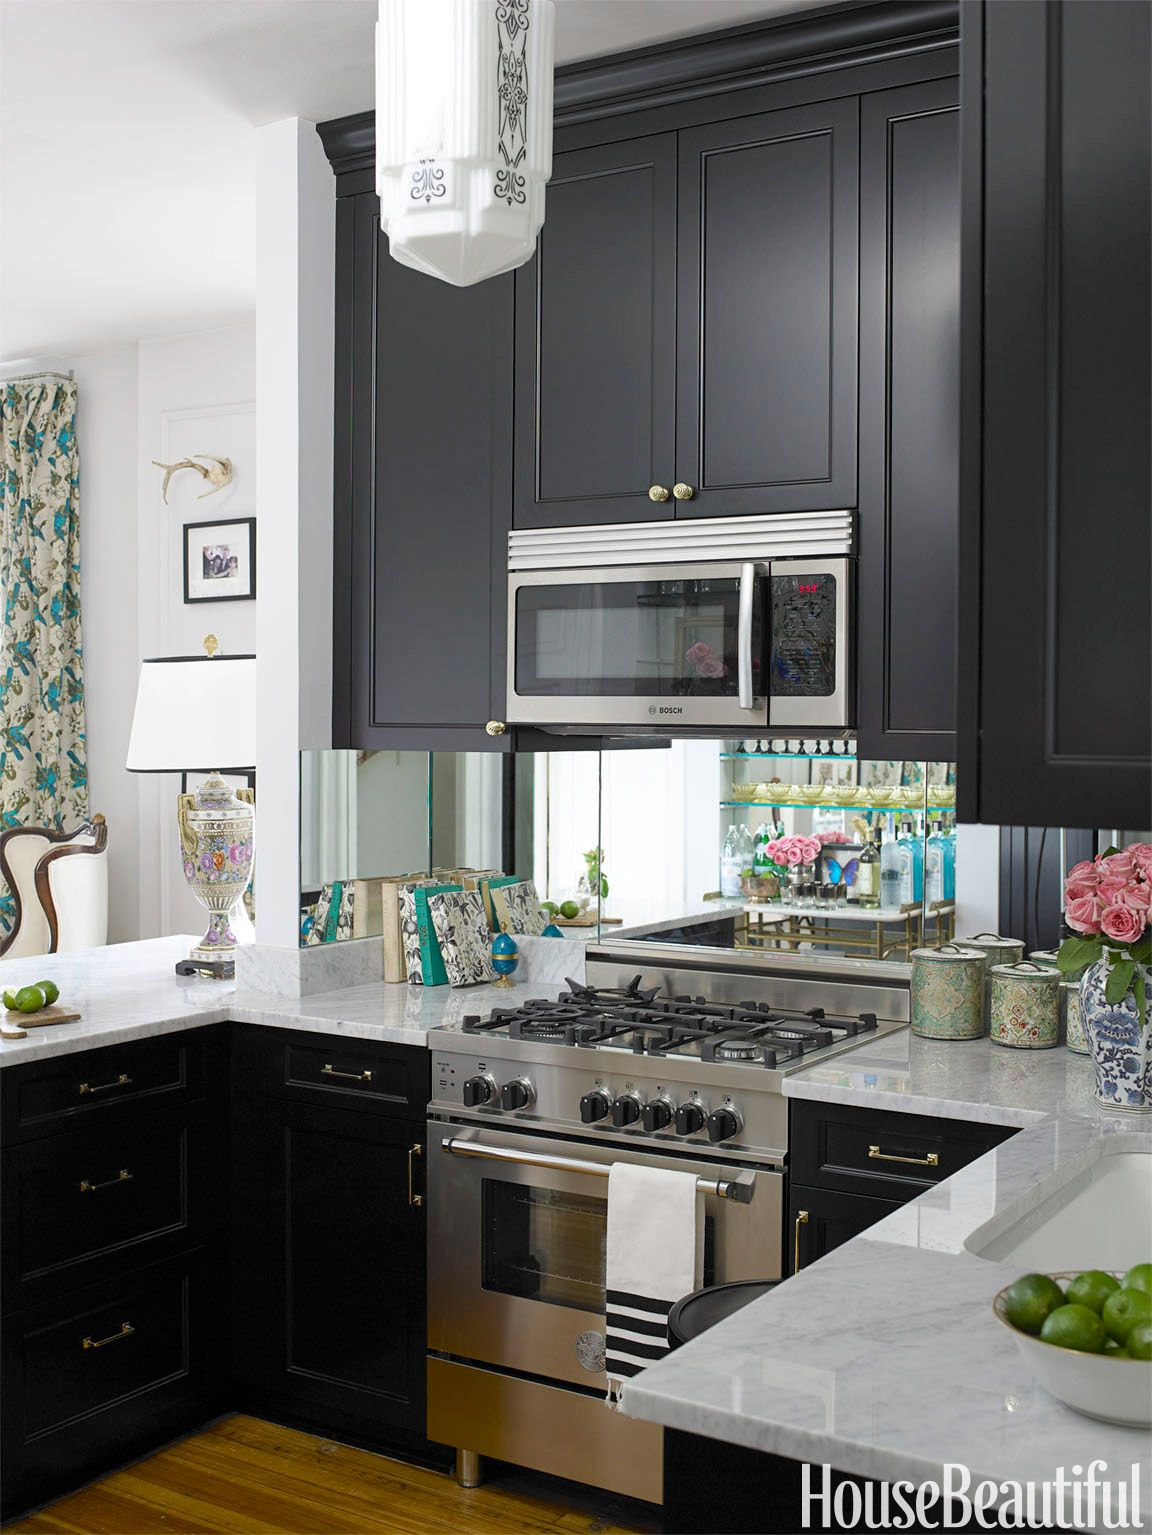 Uncategorized Efficiency Kitchen Design 30 small kitchen ideas that maximize style and efficiency high in summer thorntons chicago she set a sophisticated tone with black white to save room the space designer i